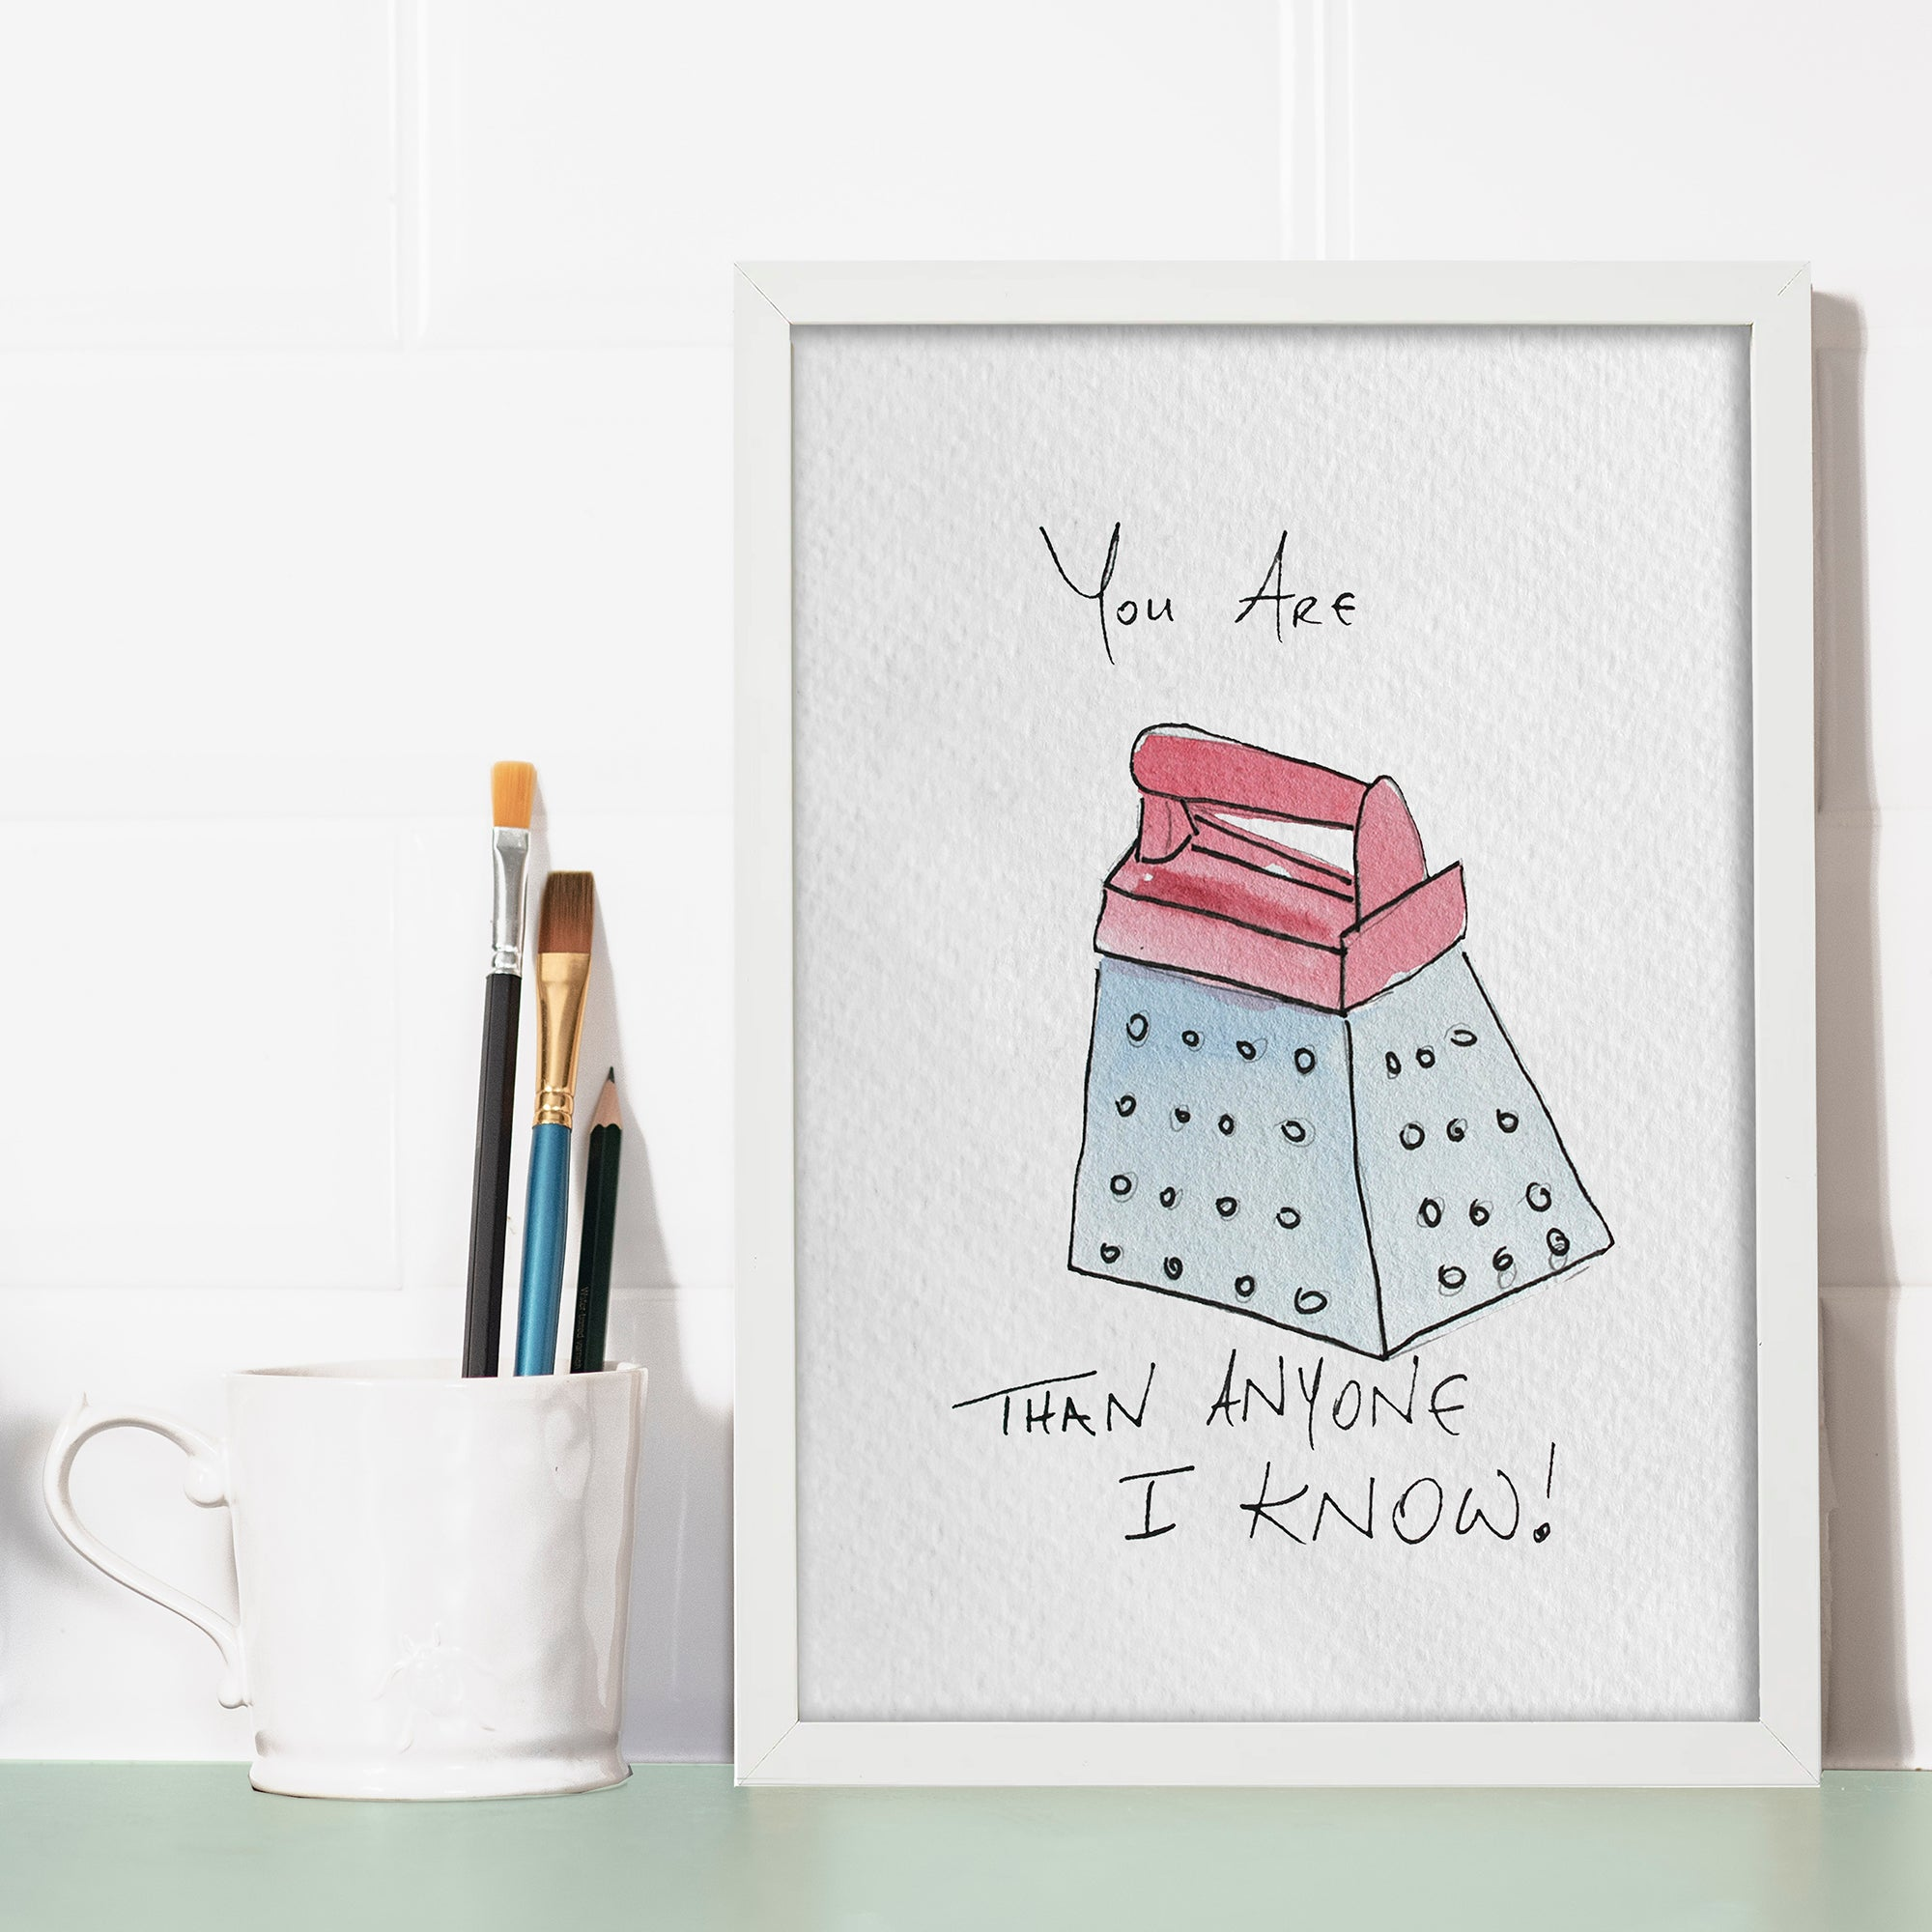 YOU ARE GRATER THAN ANYONE I KNOW! PRINT